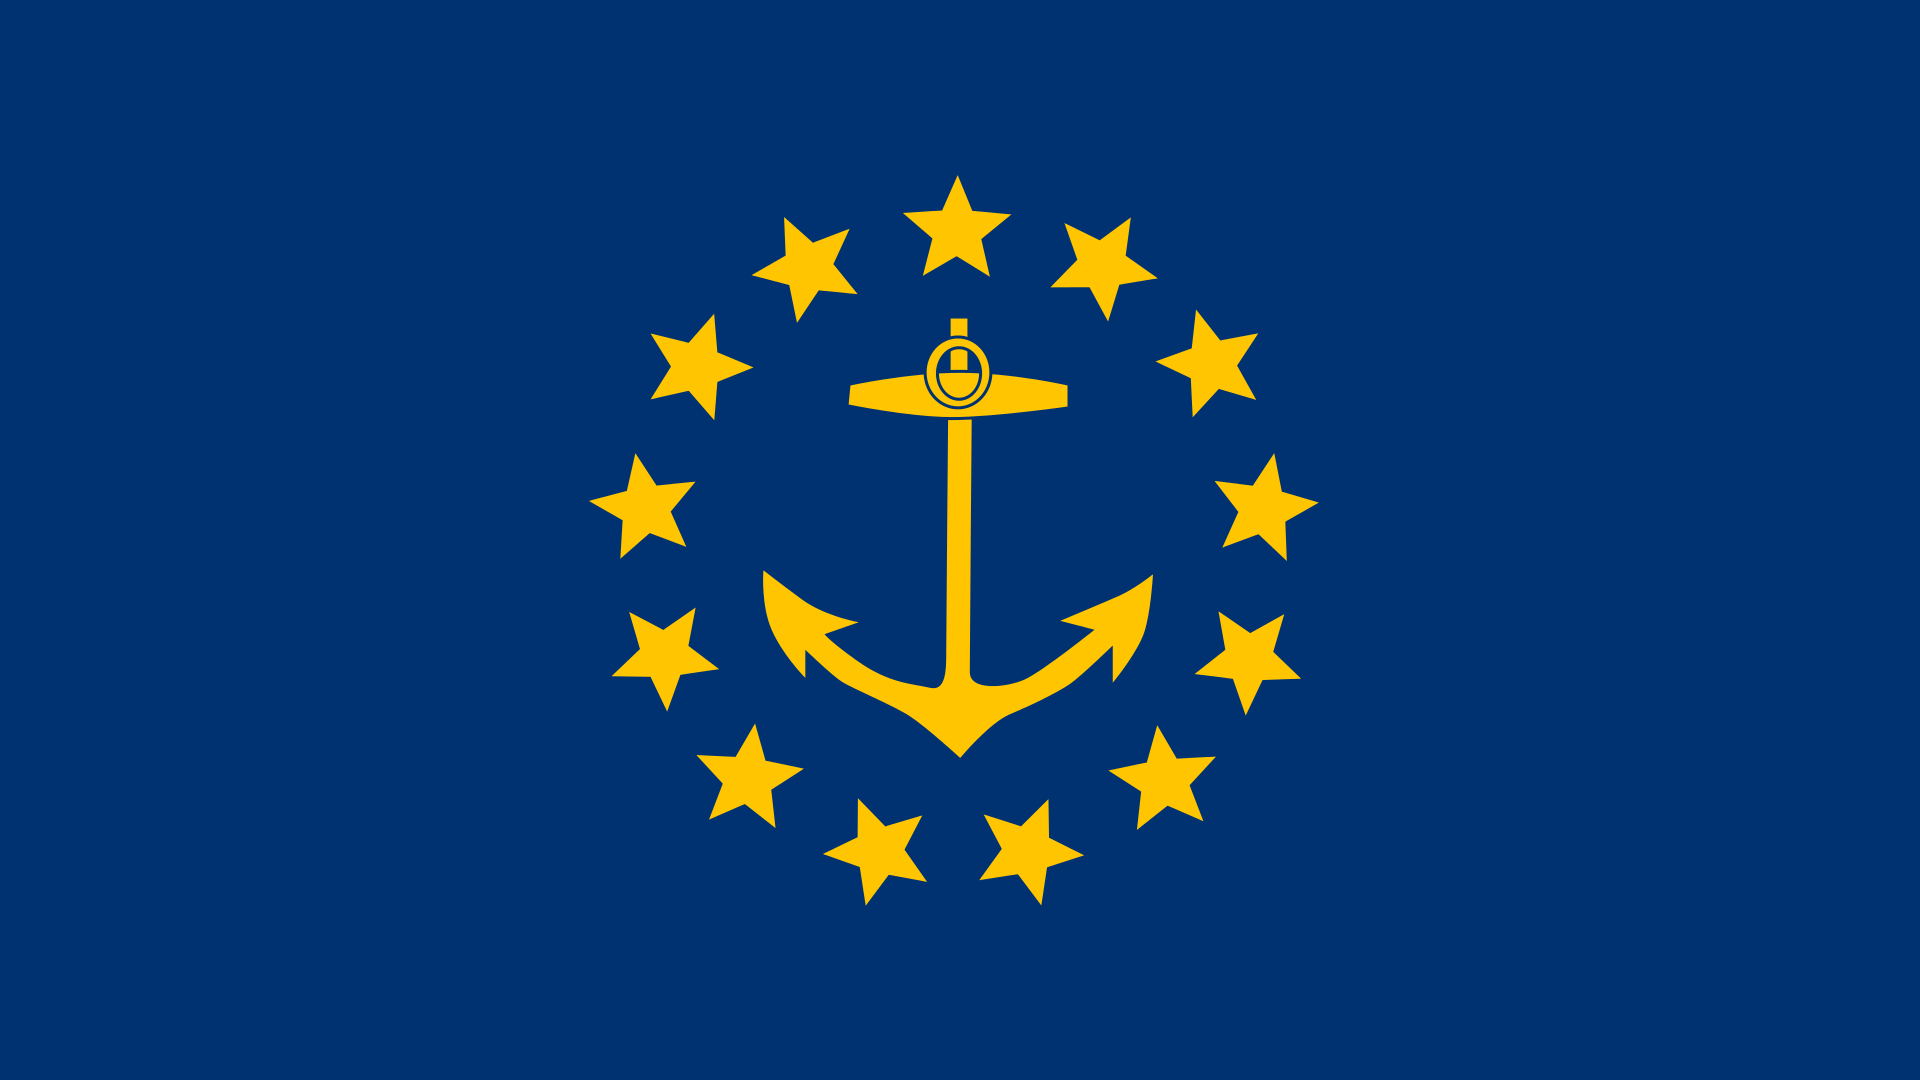 I made a wallpaper of the old Rhode Island flag 1080p RhodeIsland 1920x1080